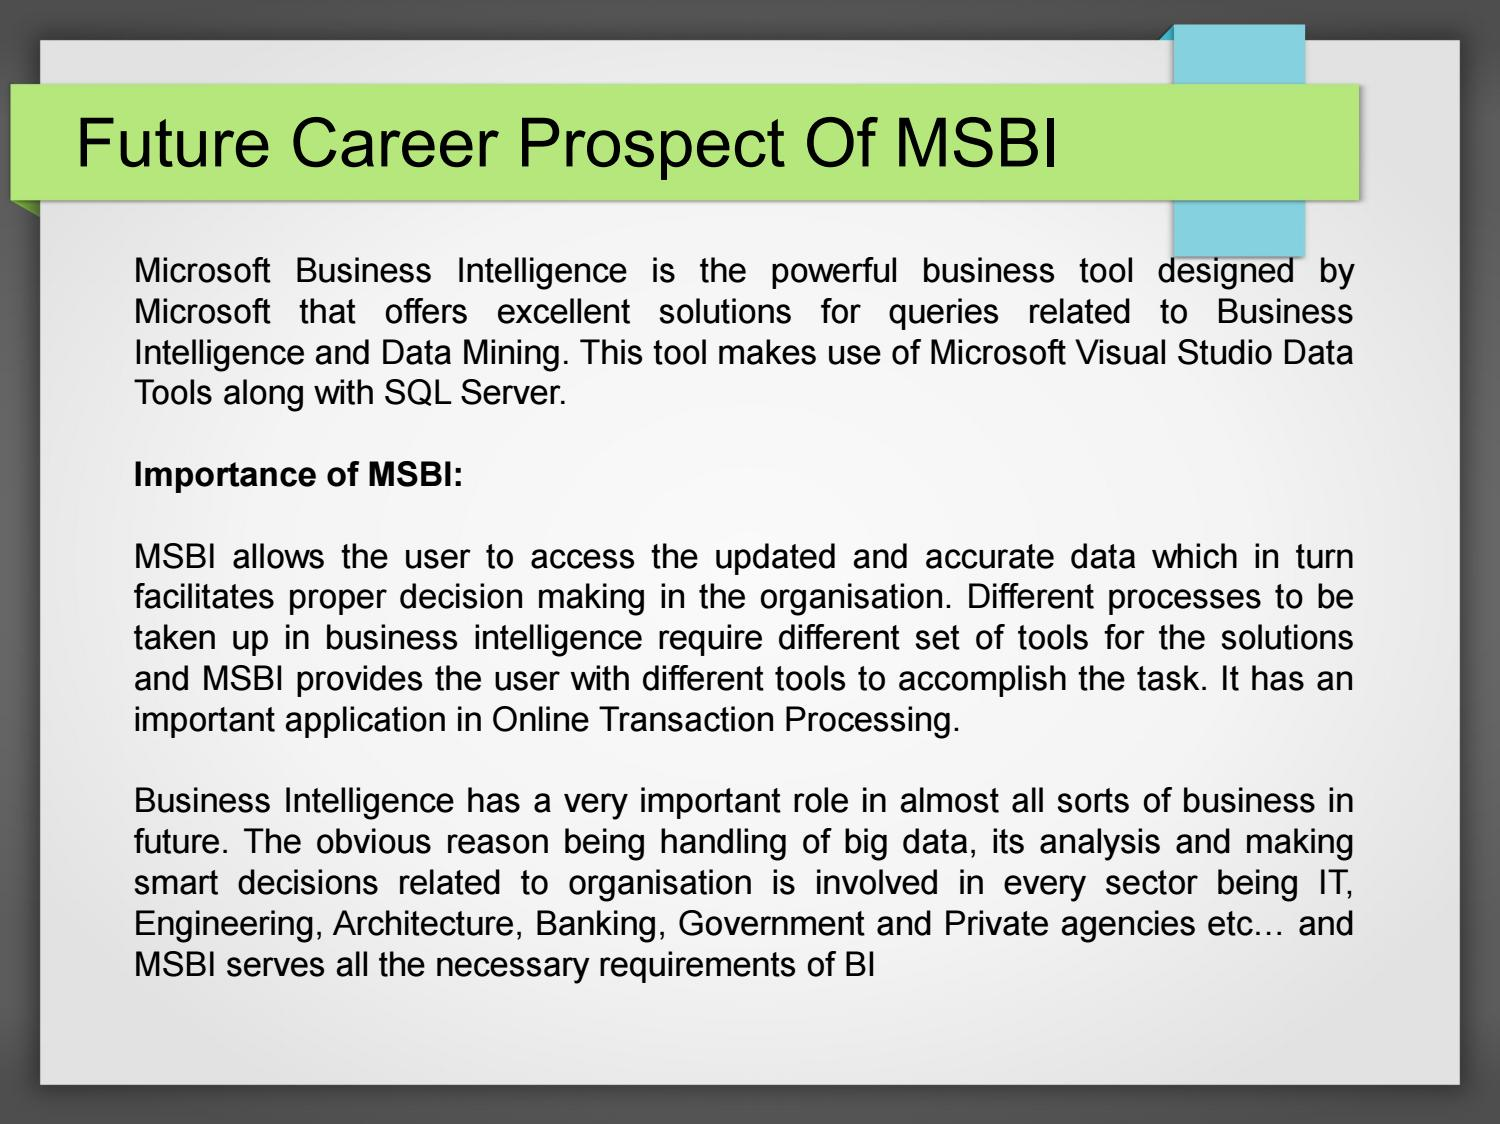 Future career prospect of msbi by Sgraphinfotech - issuu